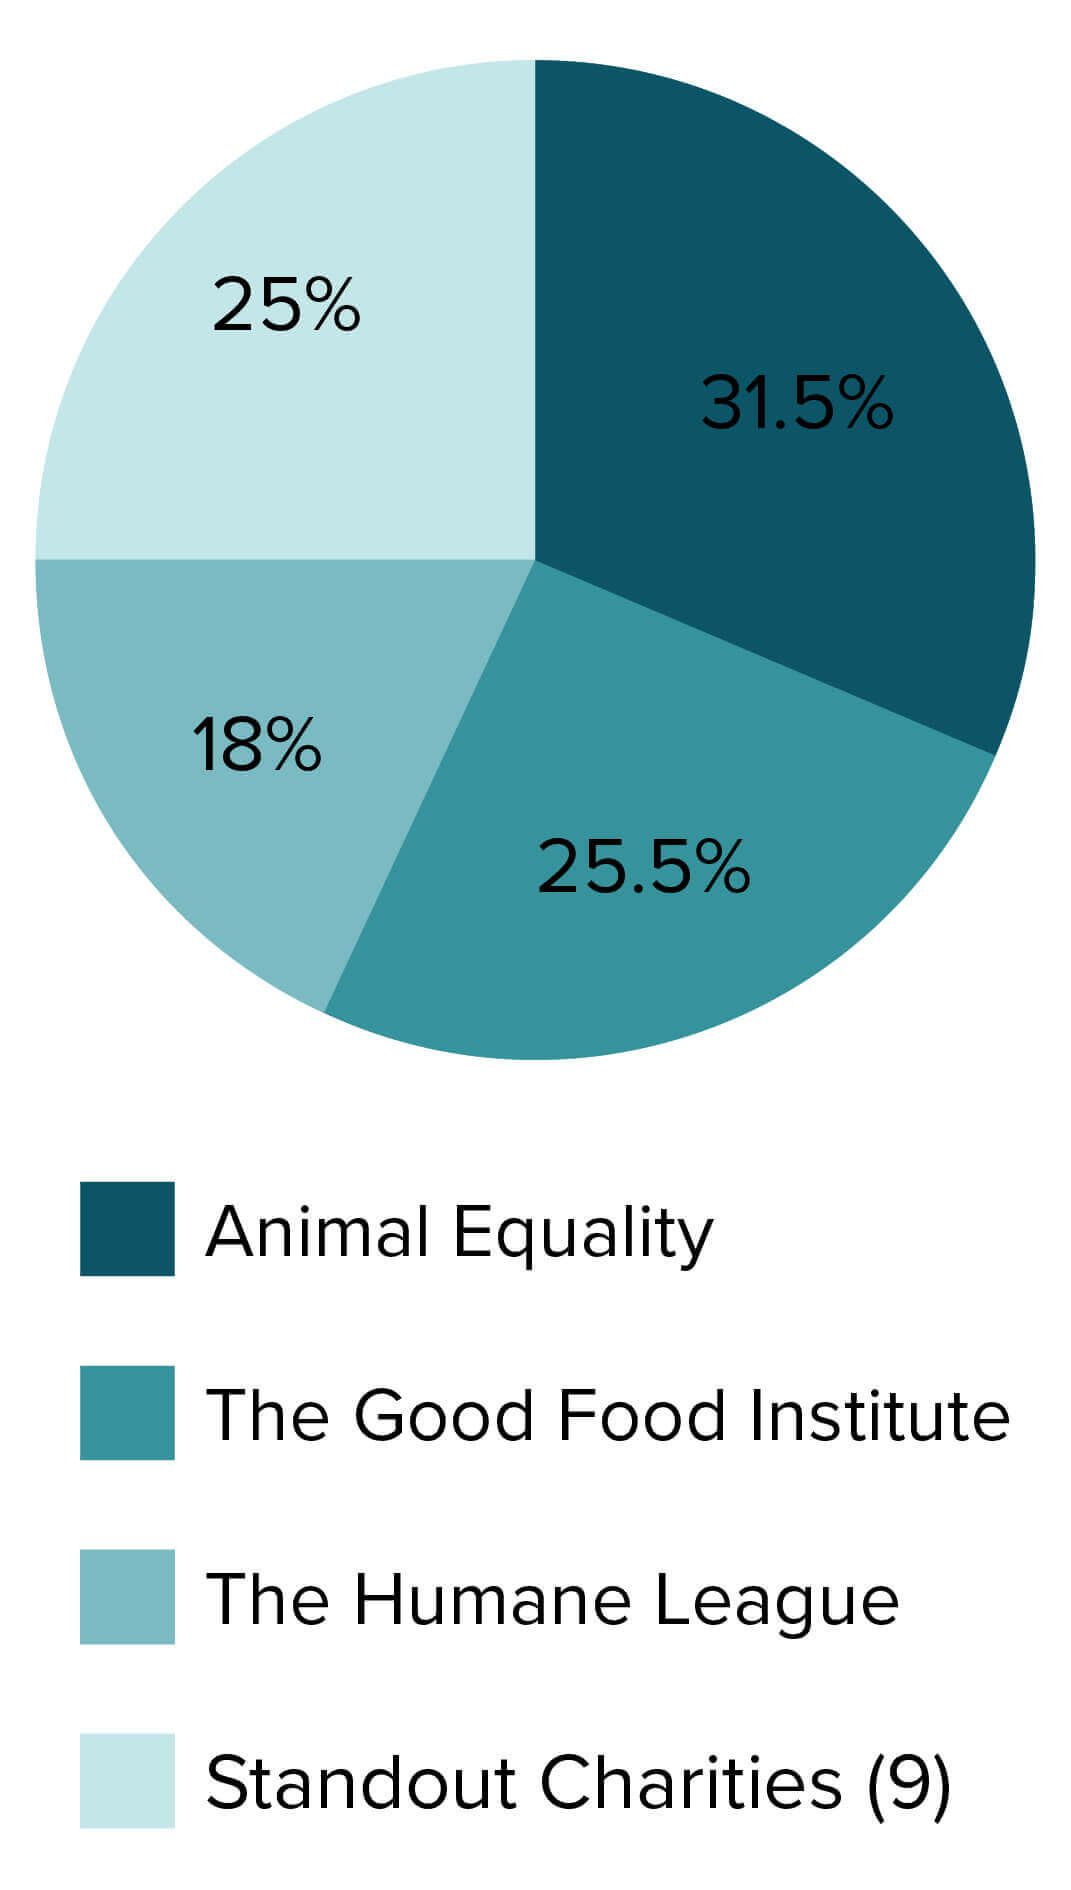 Pie chart with four slices representing the charity fund allocation breakdown. Animal Equality: 31.5%; The Good Food Institute: 25.5%; The Humane League: 18%; Standout Charities (combined): 25%.